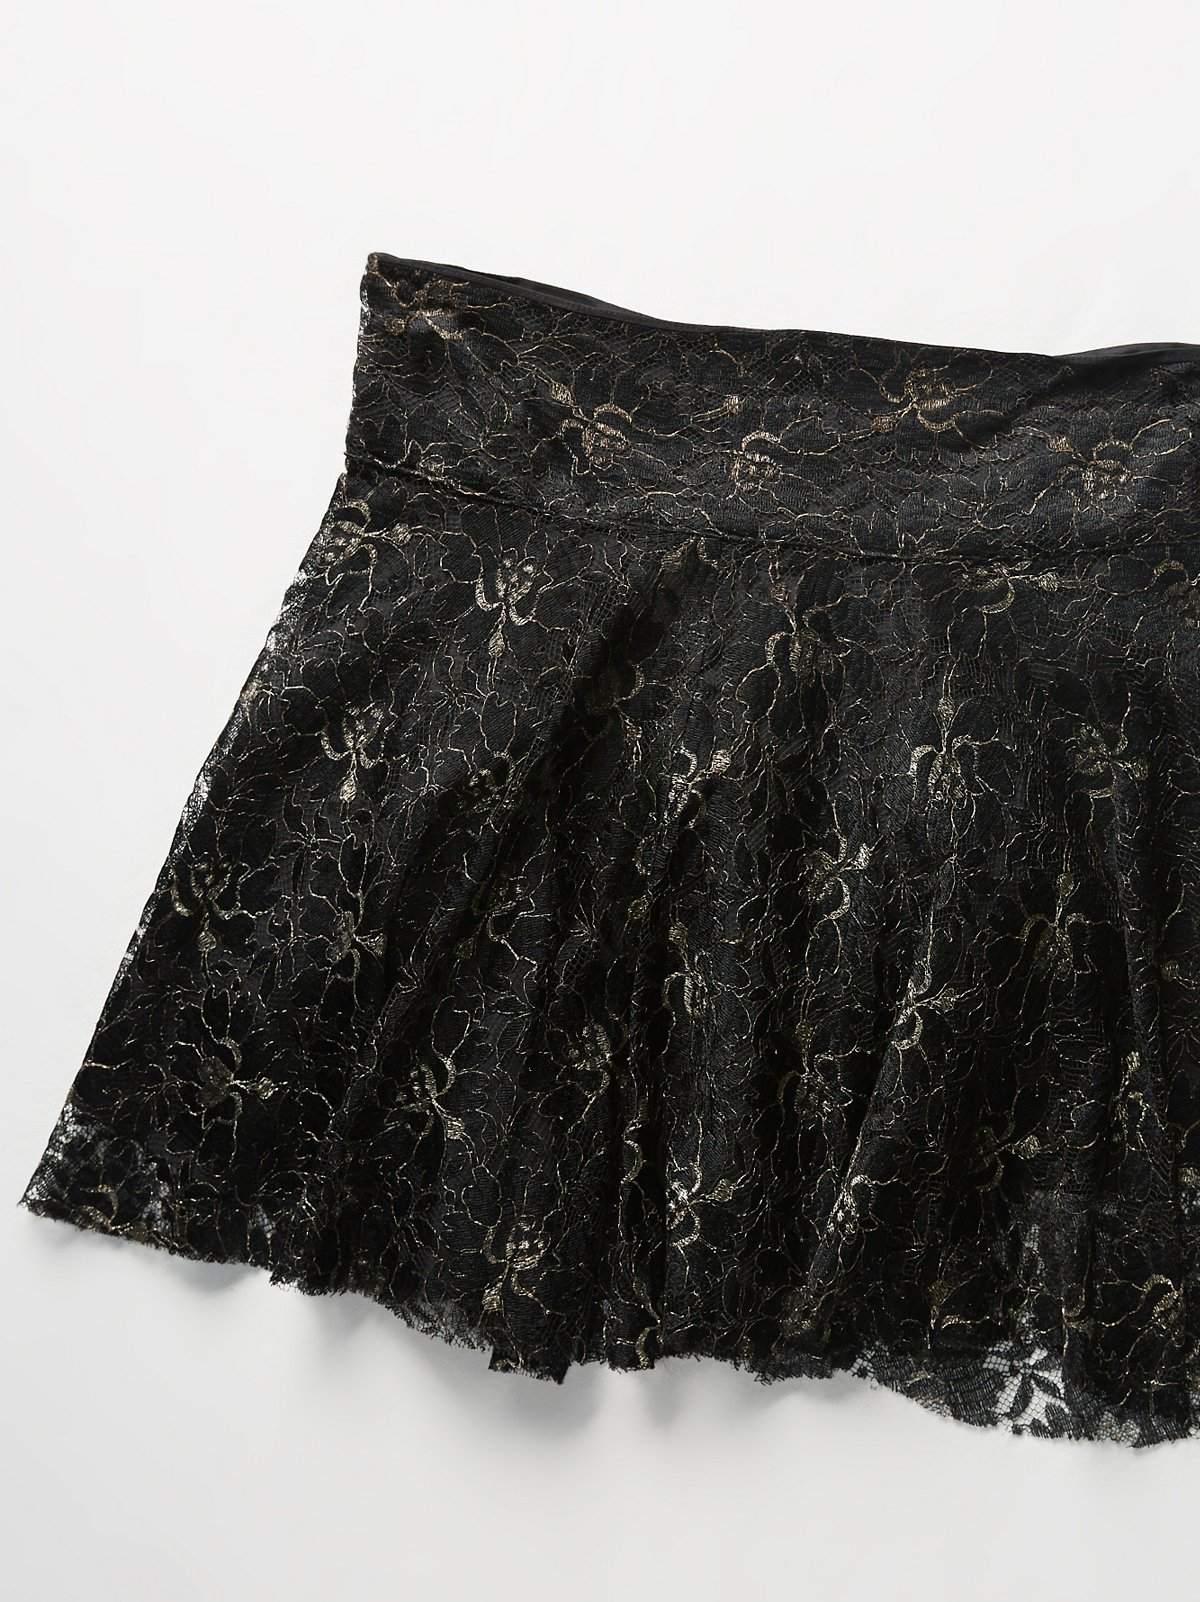 Vintage 1980s Lace Skirt